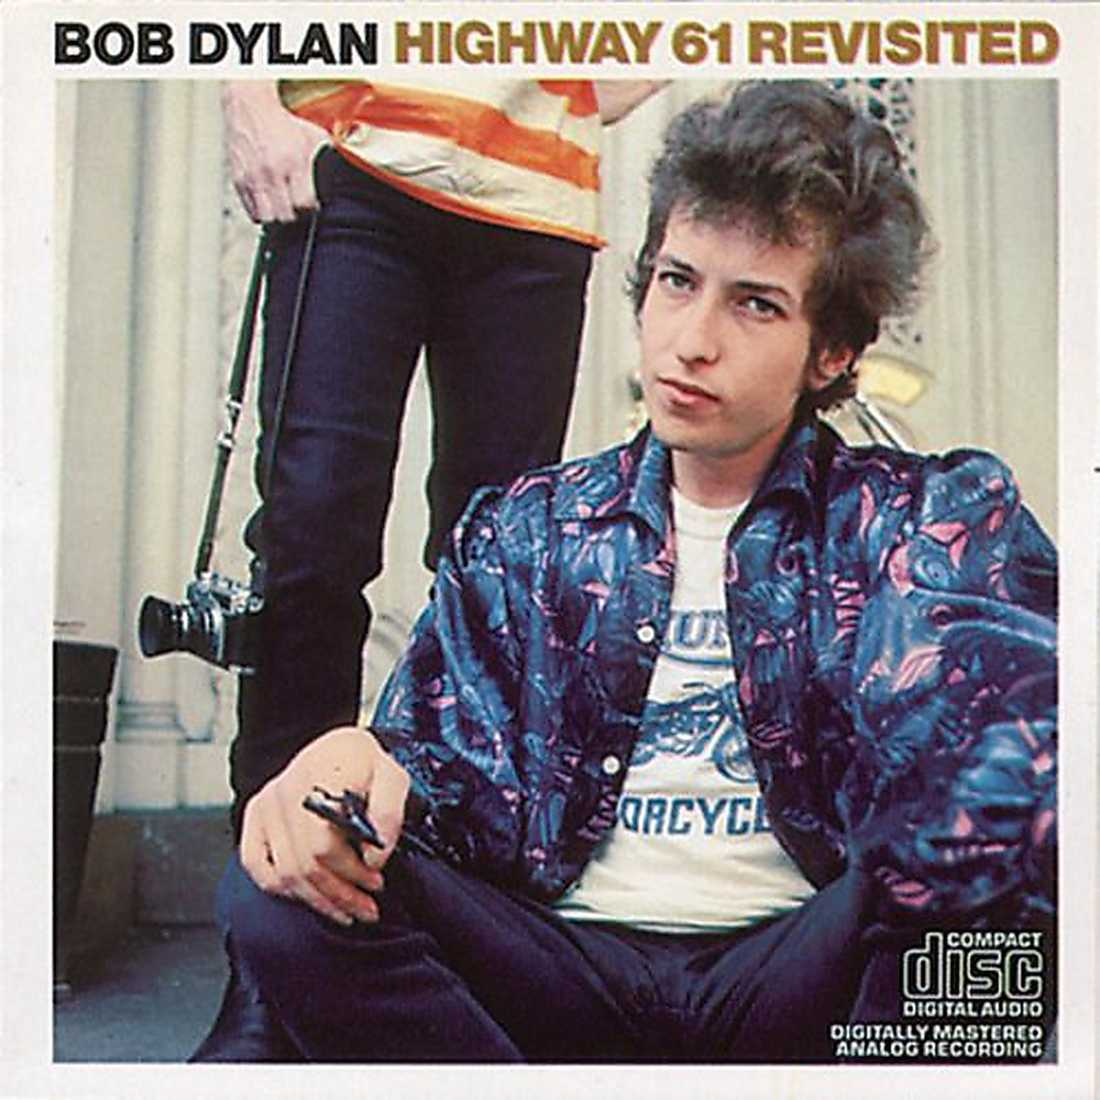 2 Highway 61 revisited (album)